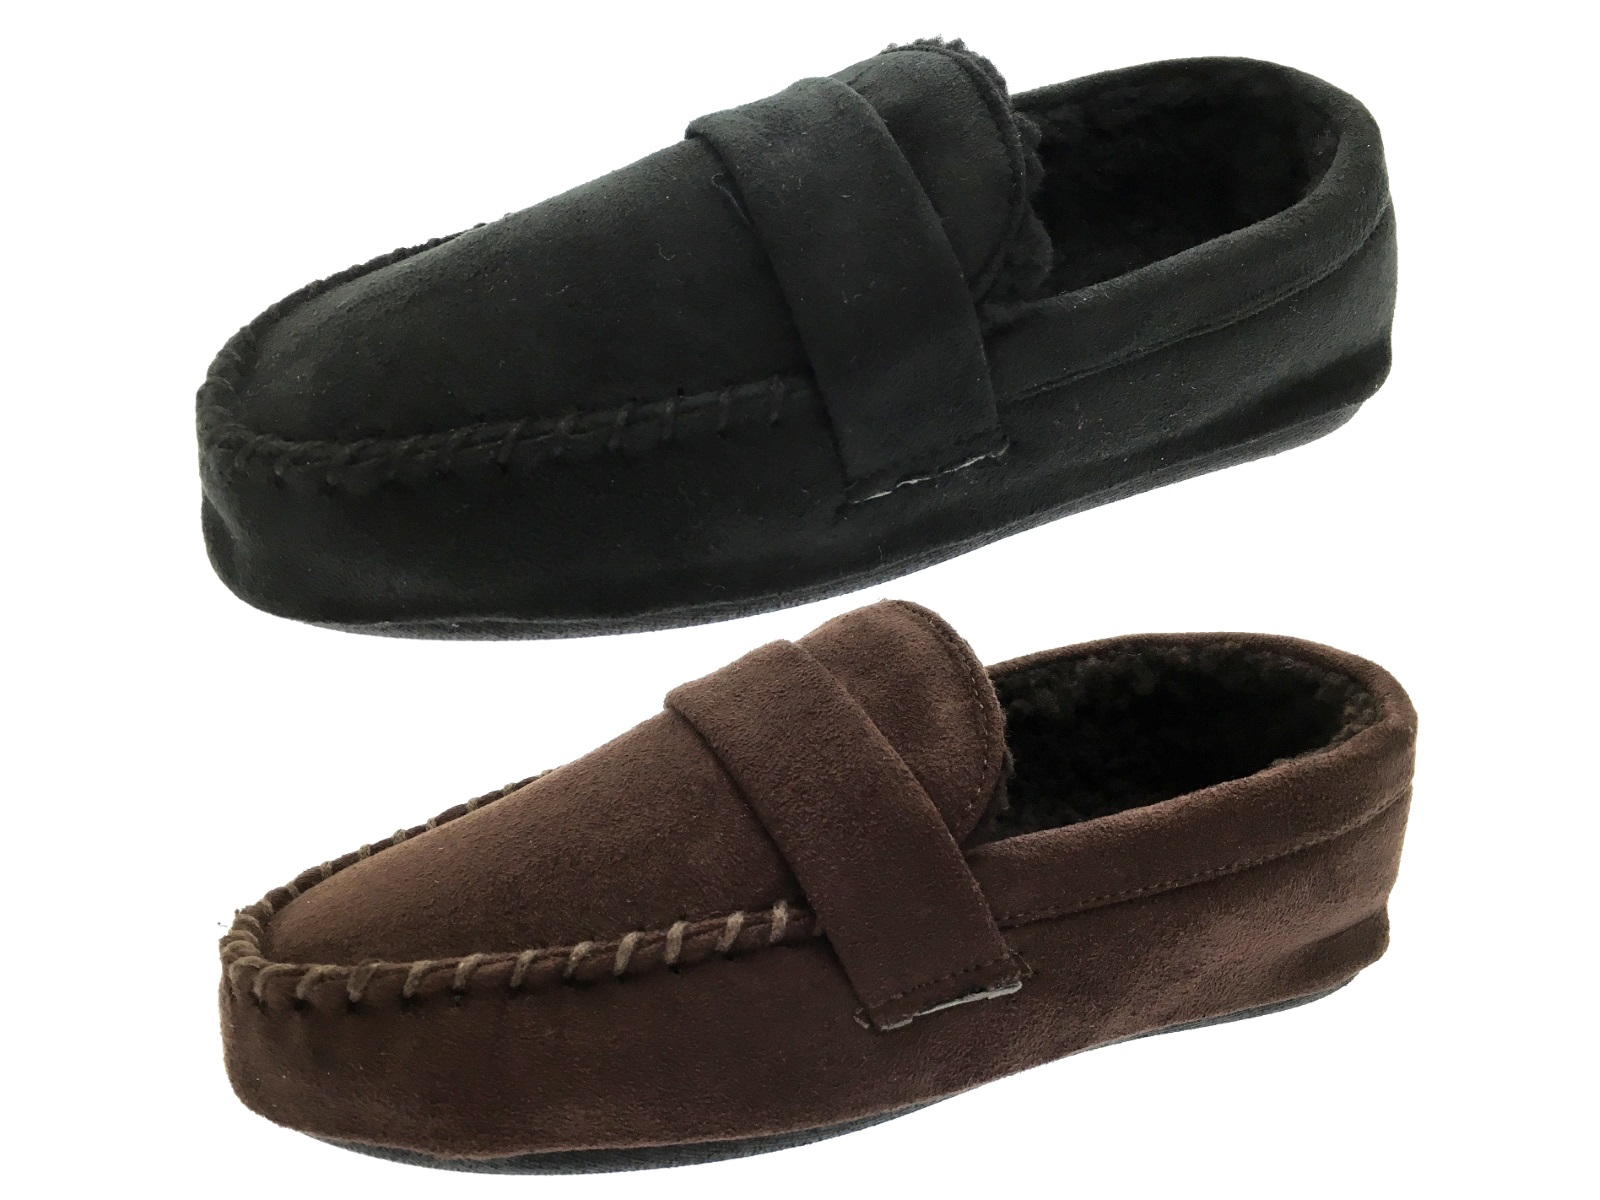 Mens Moccasins Faux Suede Slippers Warm Winter Faux Fur Lined Shoes Size UK 7-12 | EBay